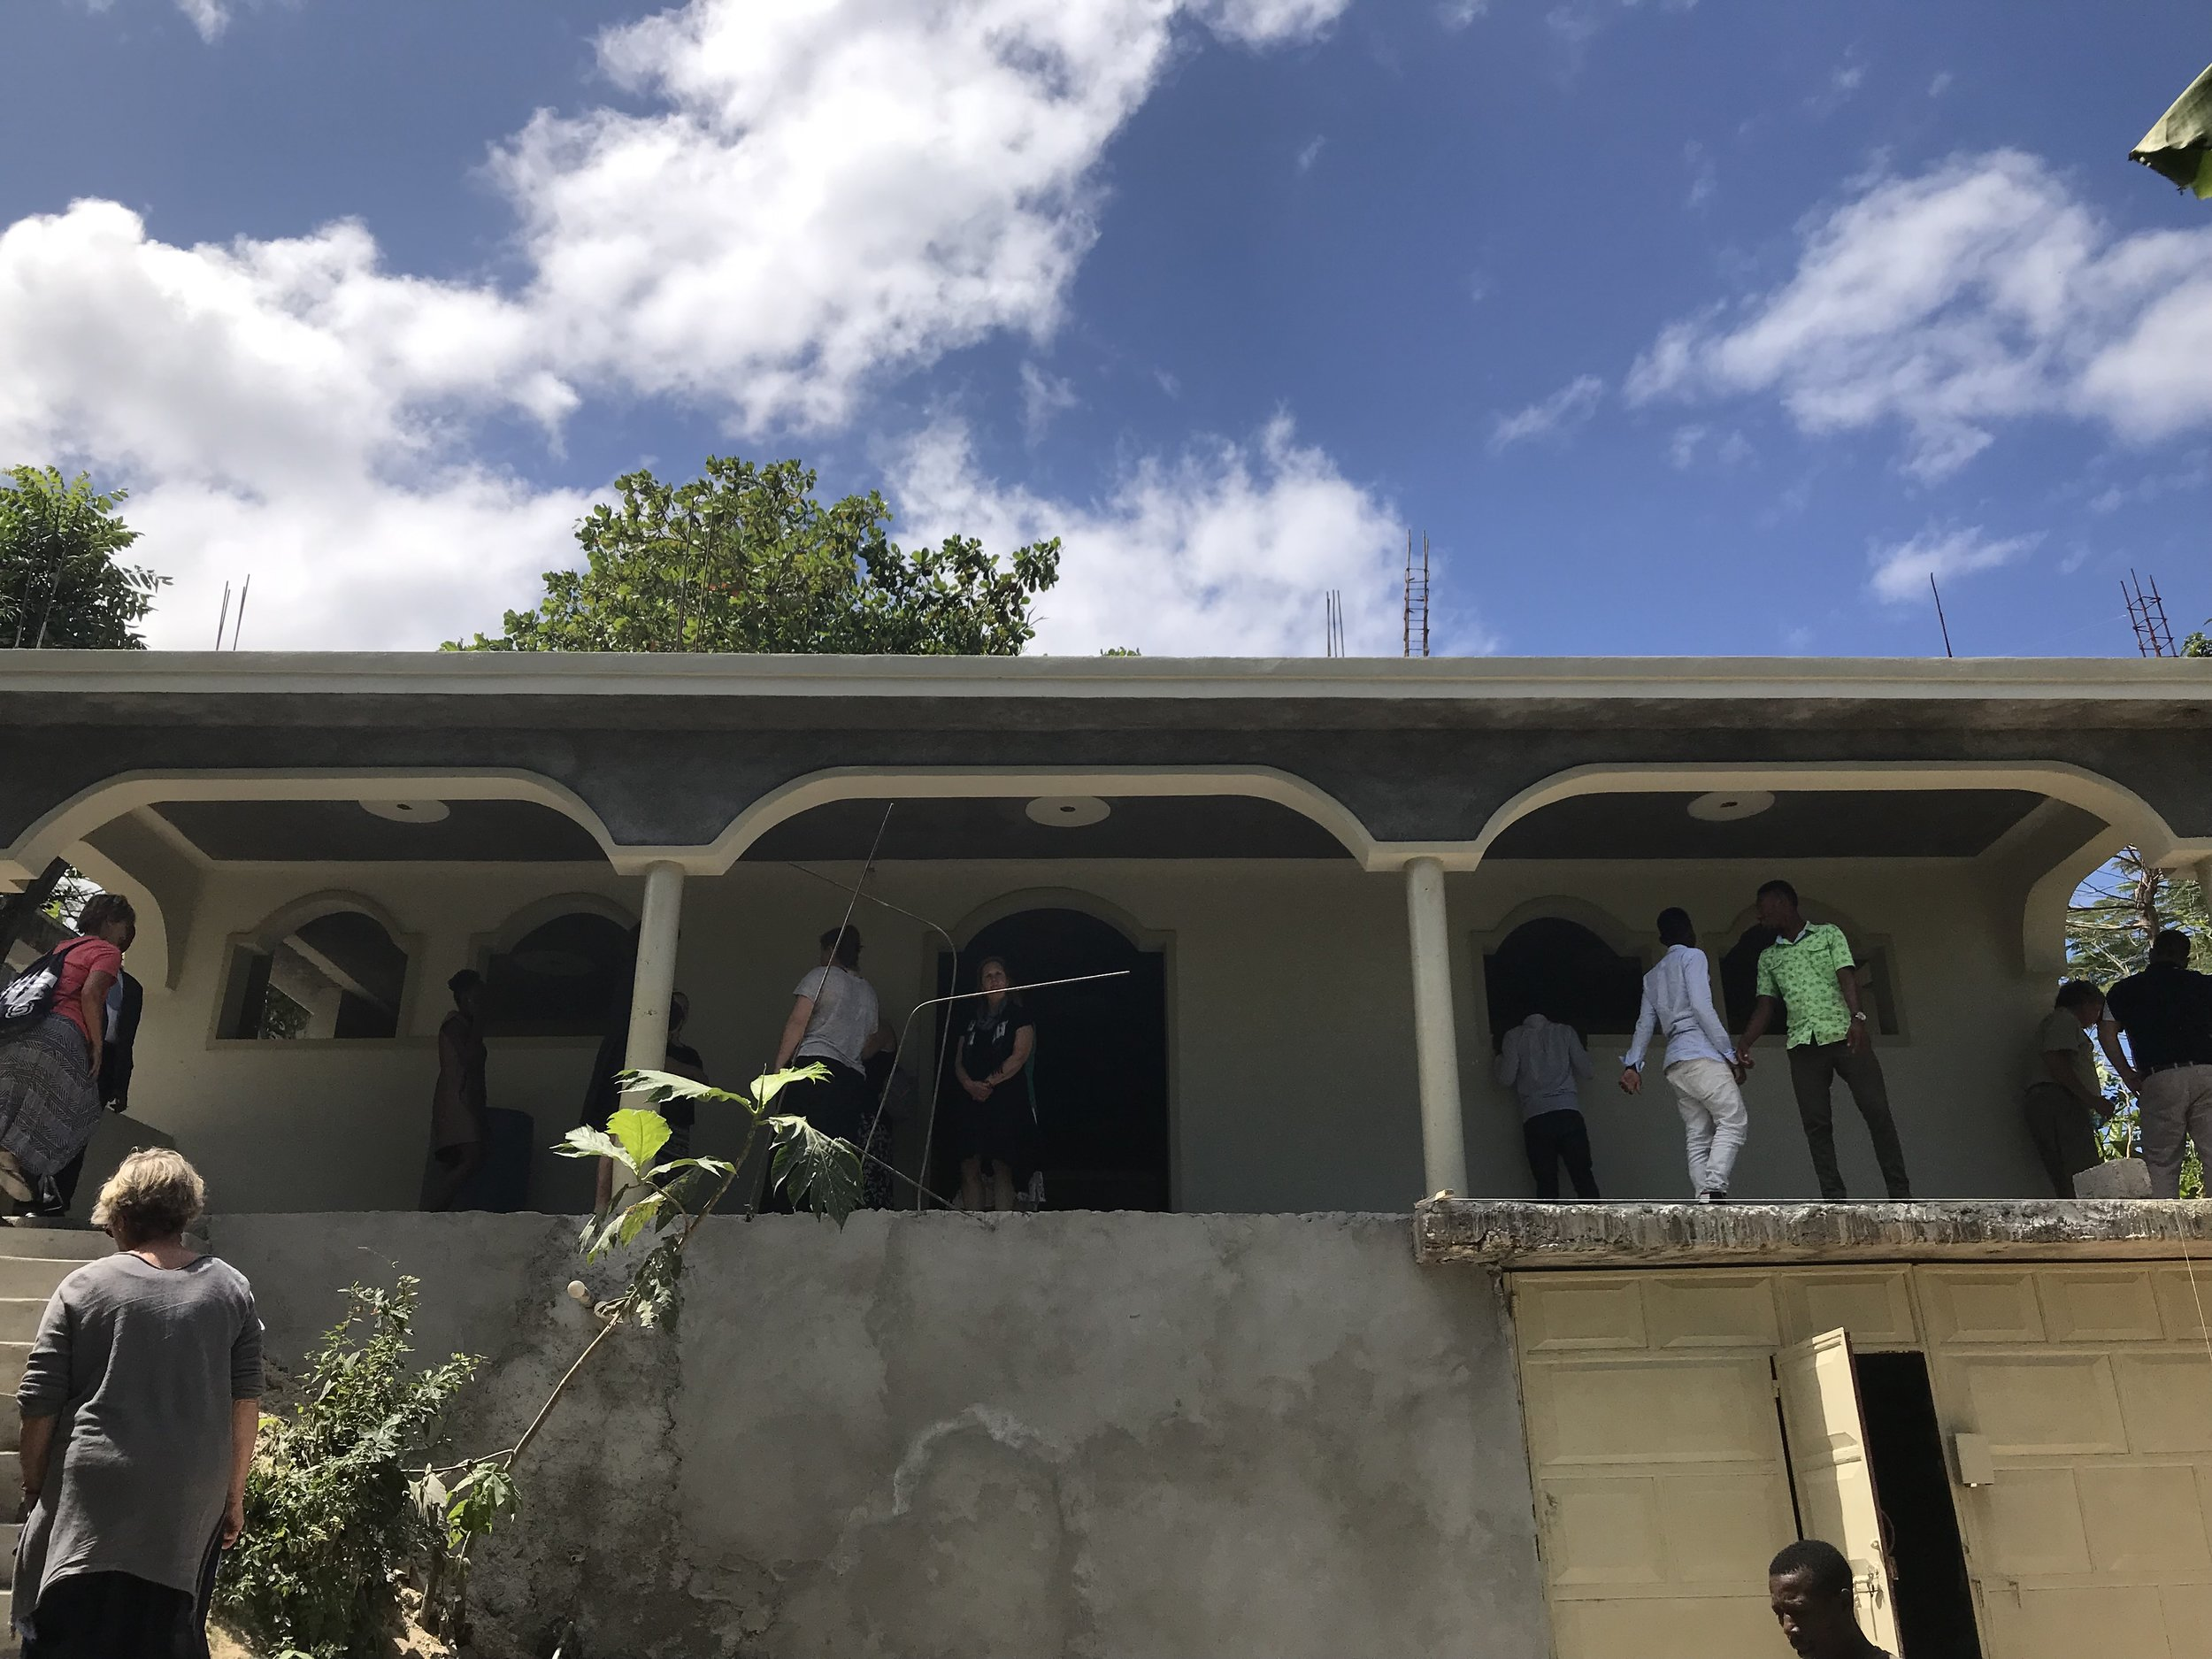 26 BOYS MOVED INTO THE BRAND NEW TRANSITION HOME IN MARCH 2018